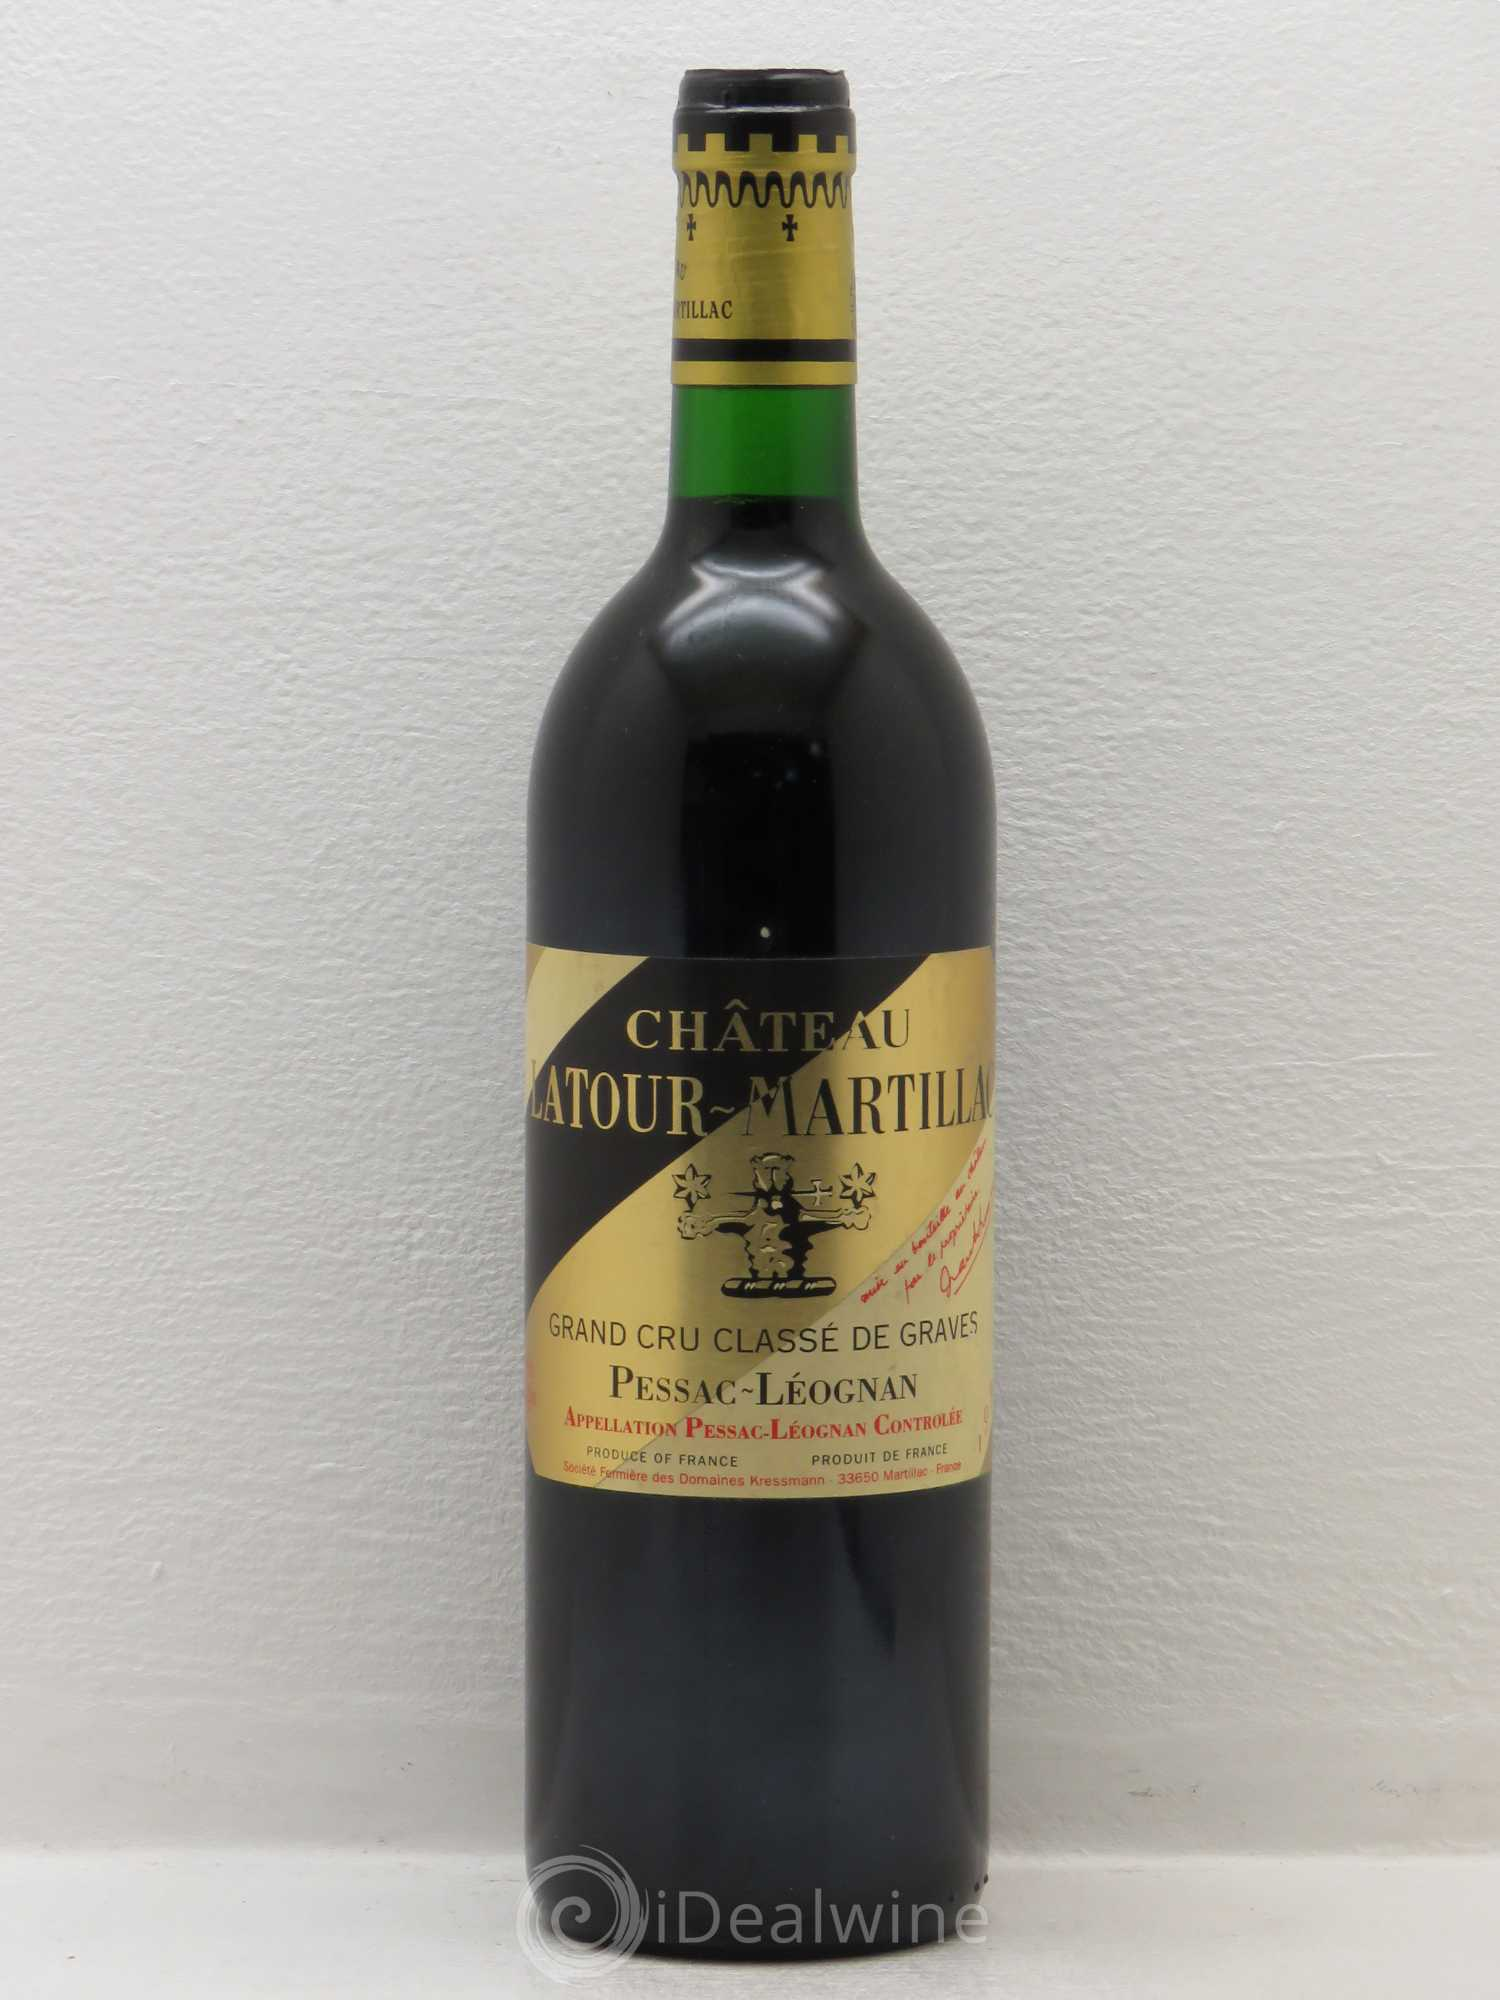 acheter ch teau latour martillac cru class de graves 1993 lot 6240. Black Bedroom Furniture Sets. Home Design Ideas